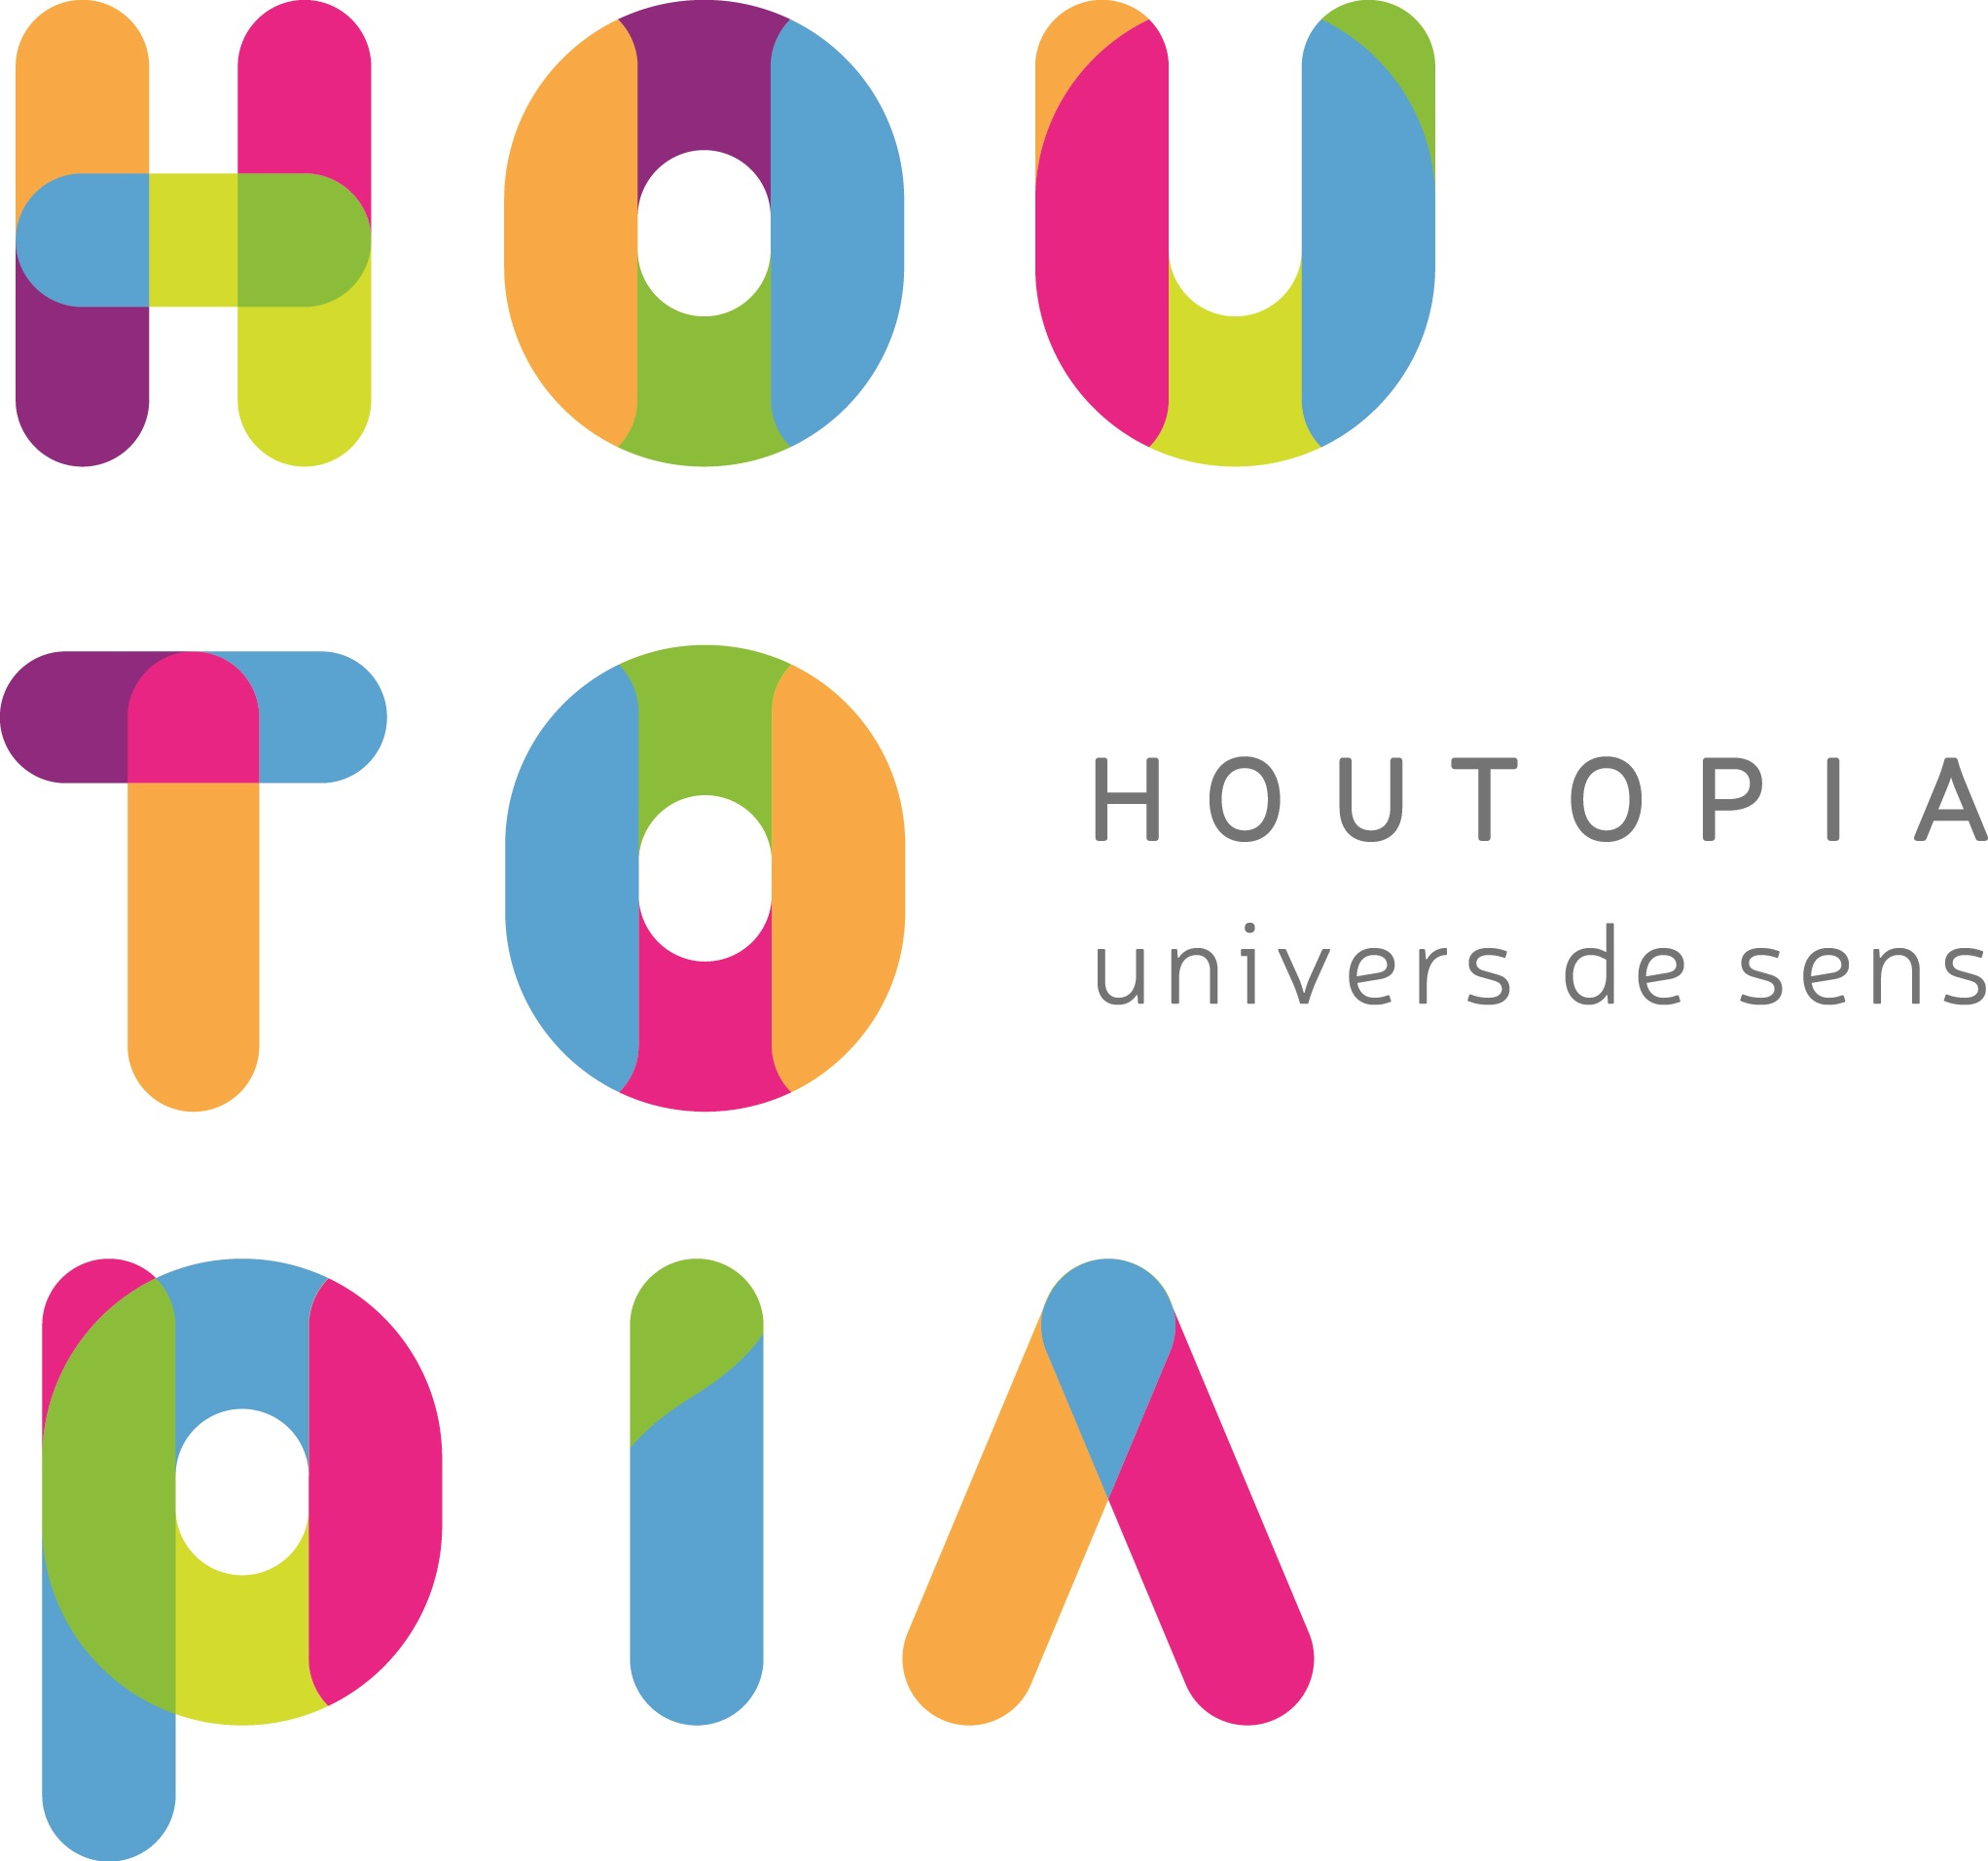 Houtopia, A World of Senses